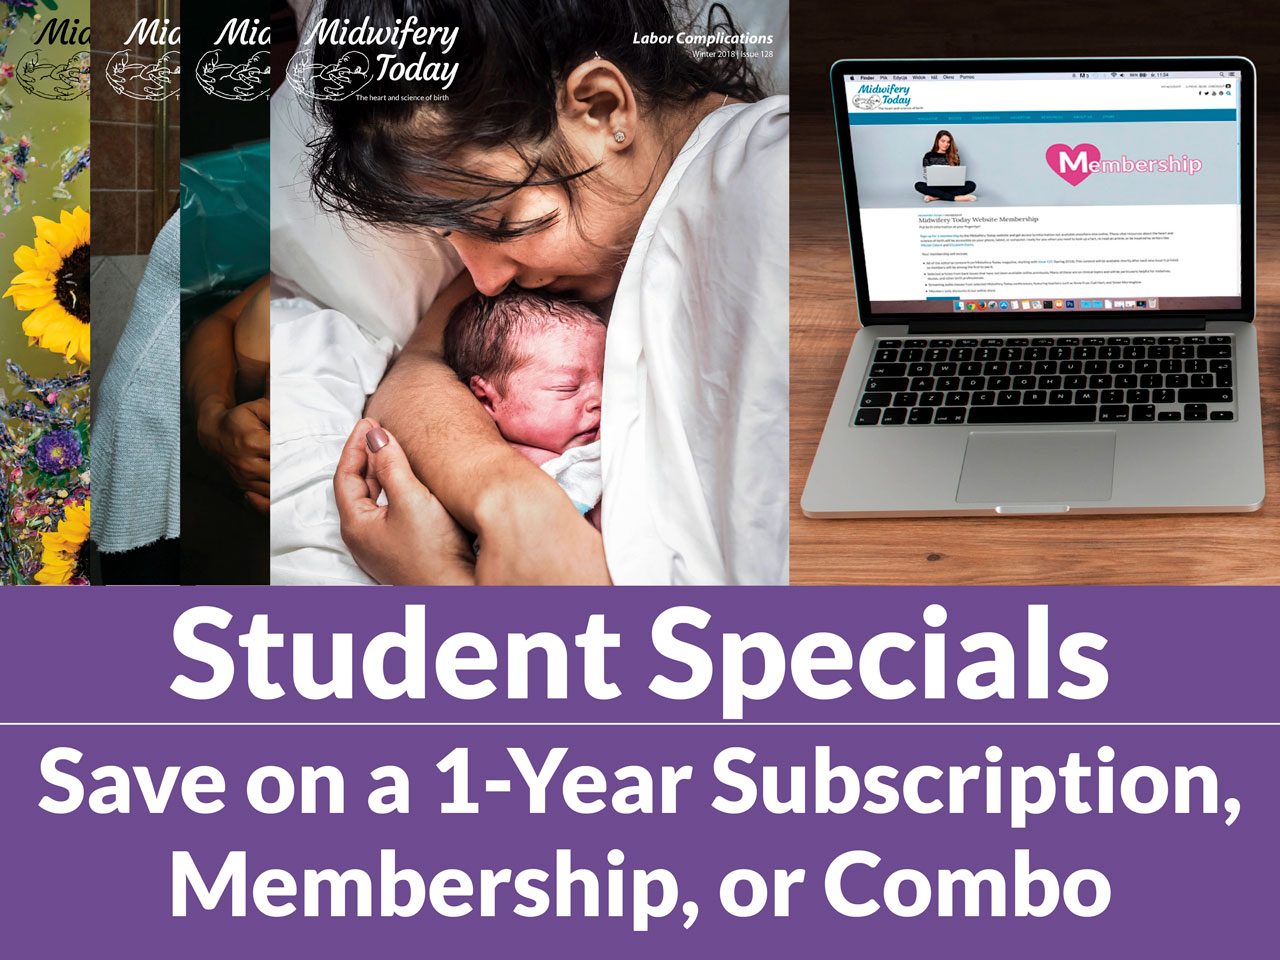 Students - save on one-year sub, membership or combo